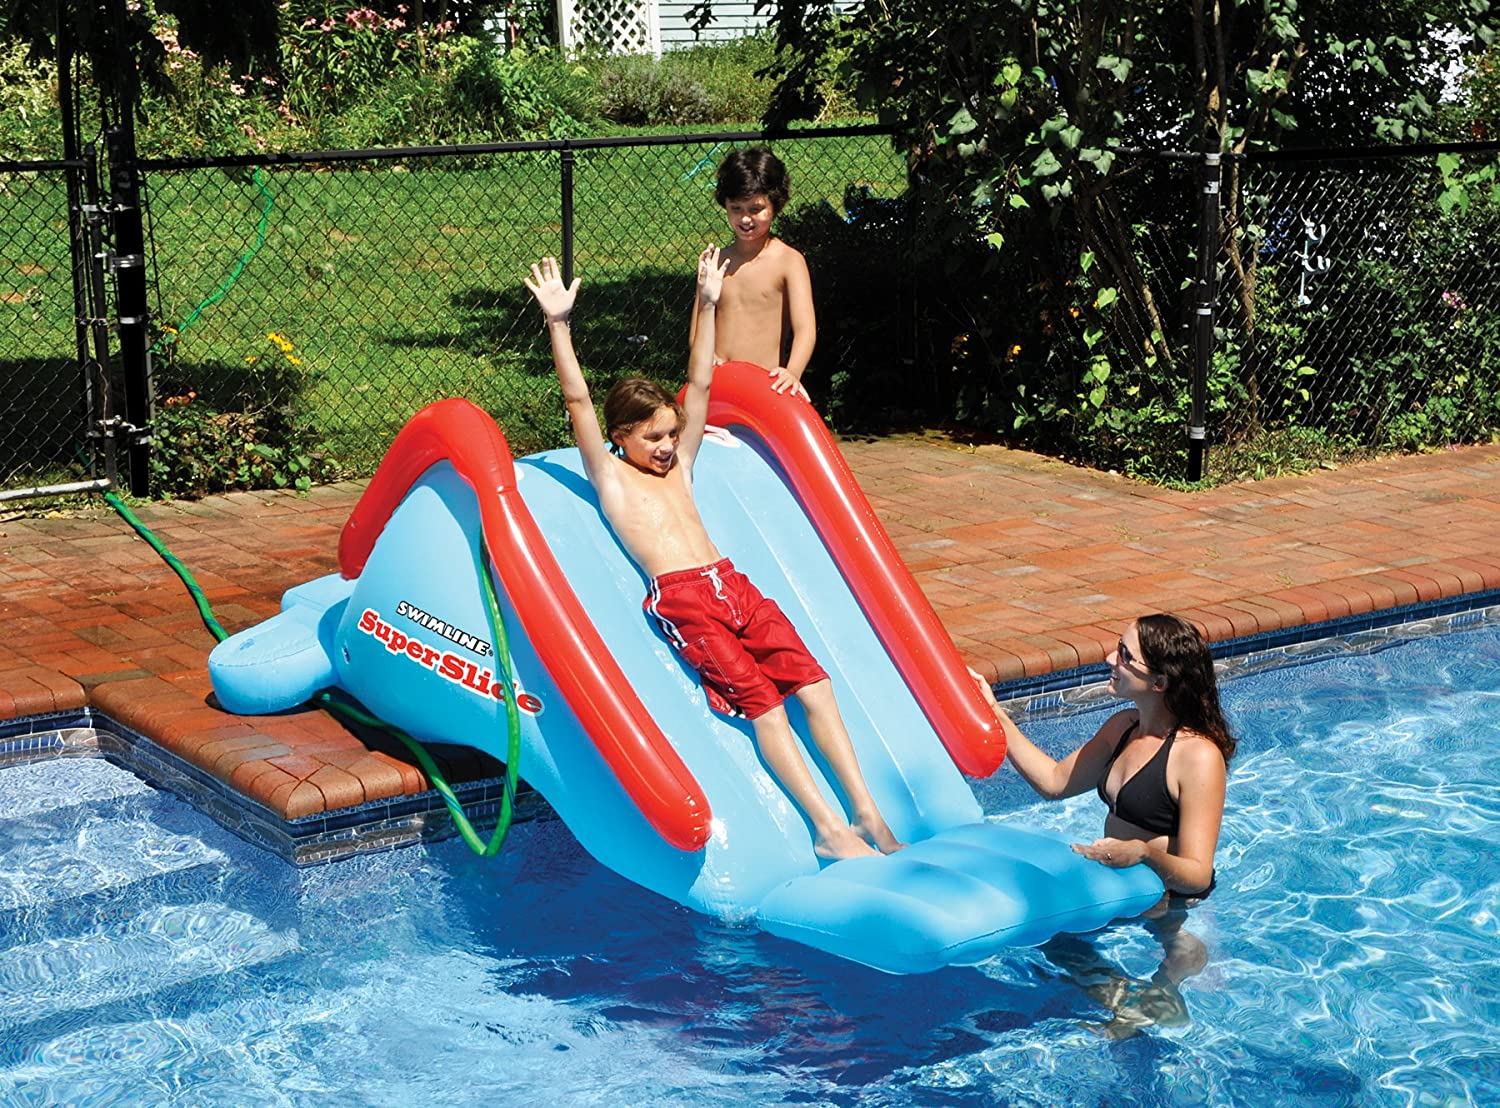 Amazon Swimline Super Slide Inflatable Pool Toy Garden Outdoor